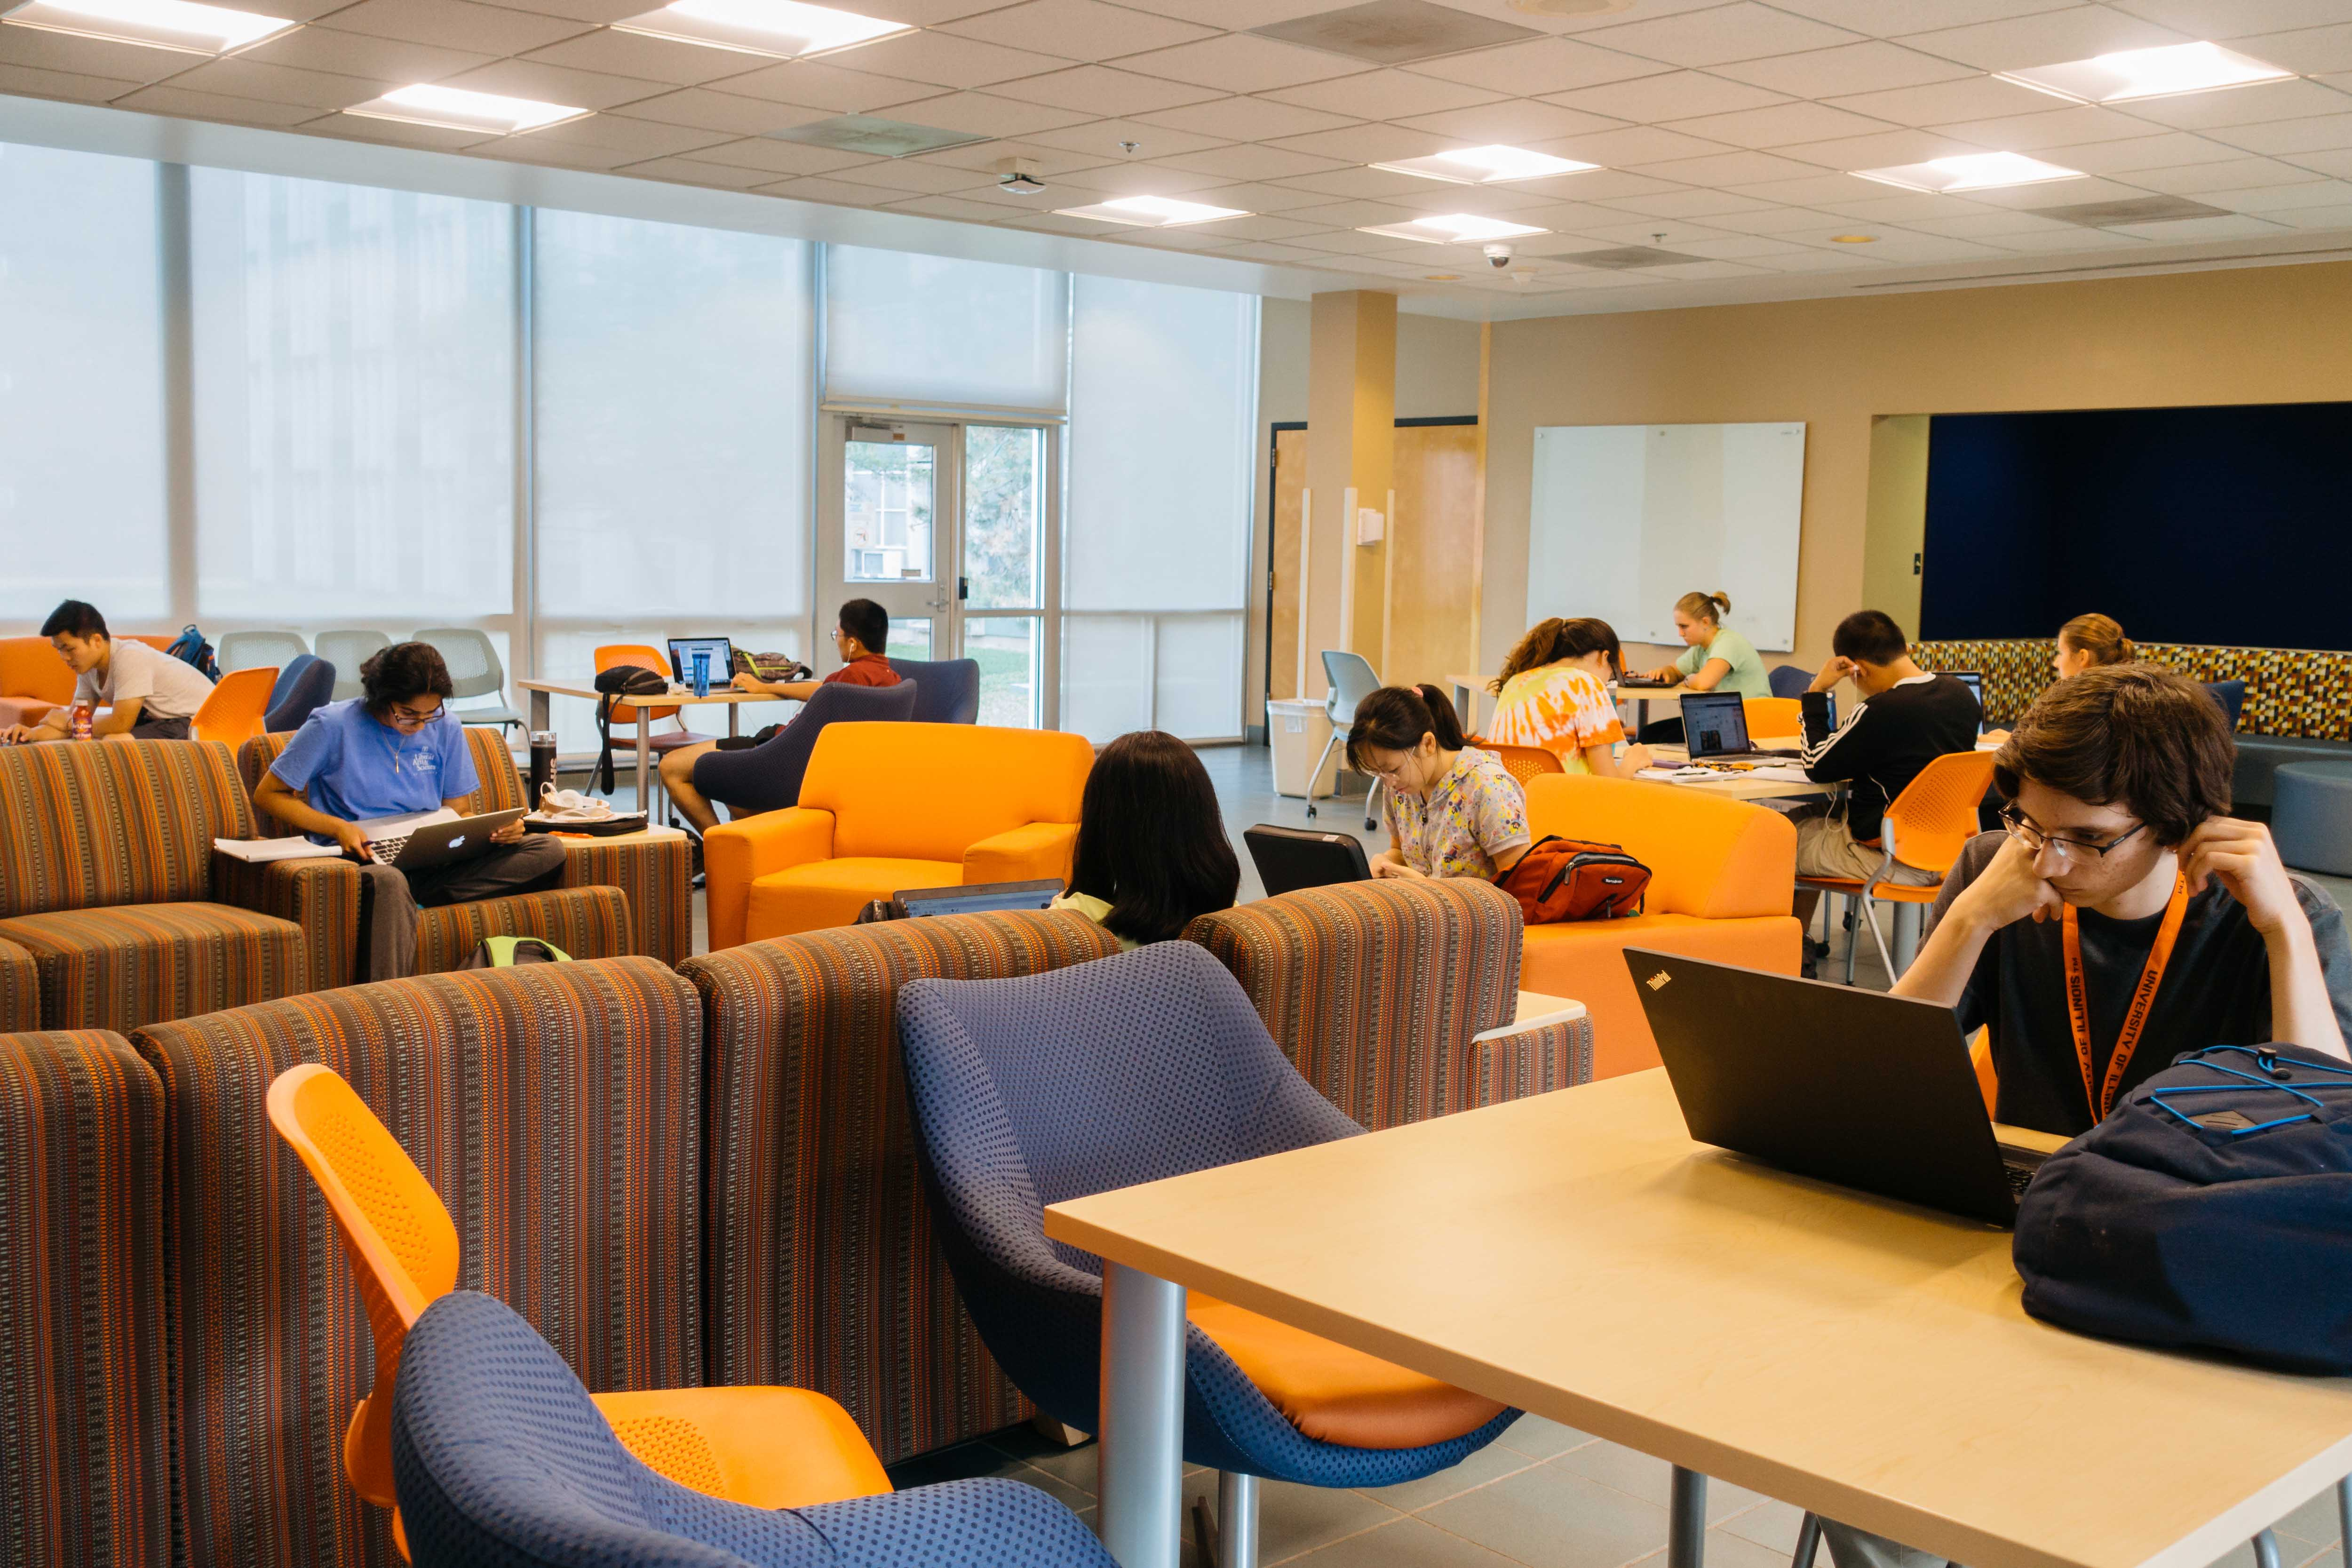 Students study in Illinois Street Residence Hall. Whether or not your random roommate experience is positive, living with someone you don't already know can help you meet new people.